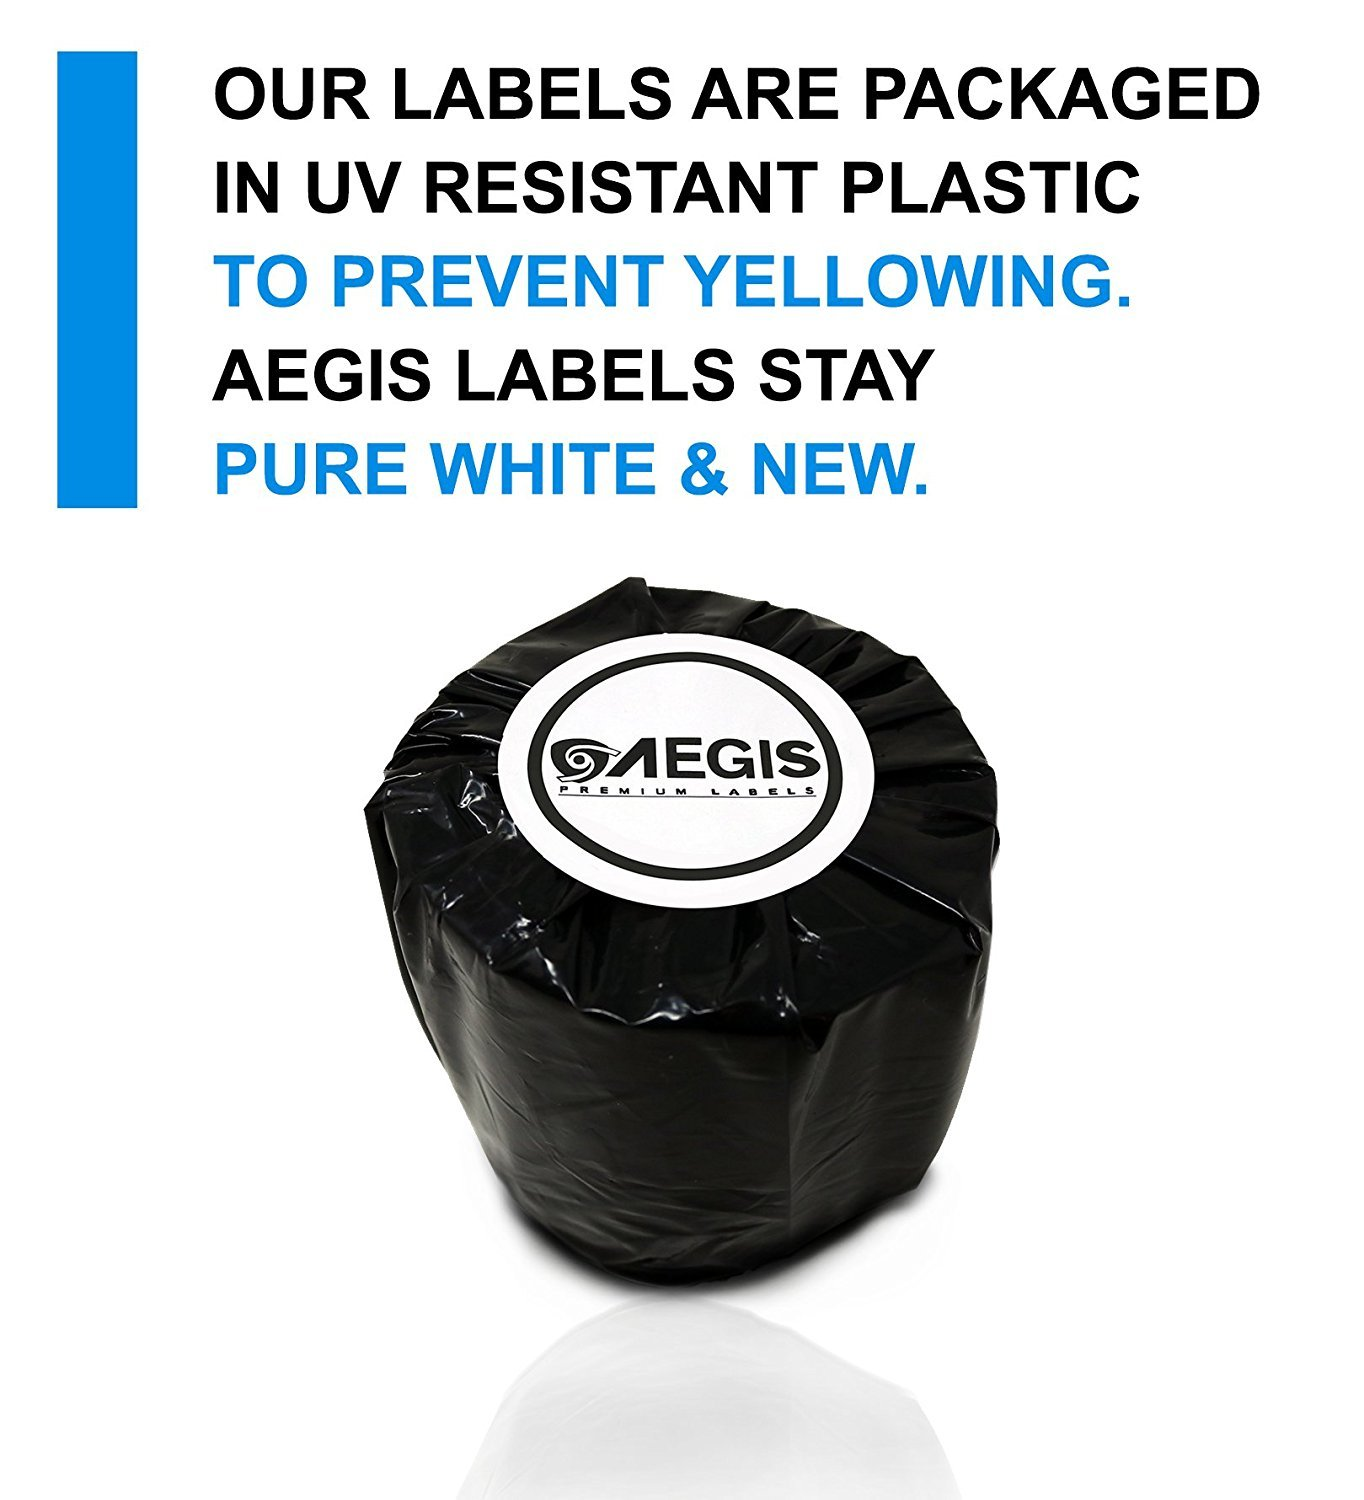 """Aegis Labels - 12 Rolls DYMO 30336 Compatible Small Multipurpose 1"""" X 2-1/8"""" Address & UPC Barcodes Labels for LW Labelwriter 450, 450 Turbo, 4XL (500/Roll)"""